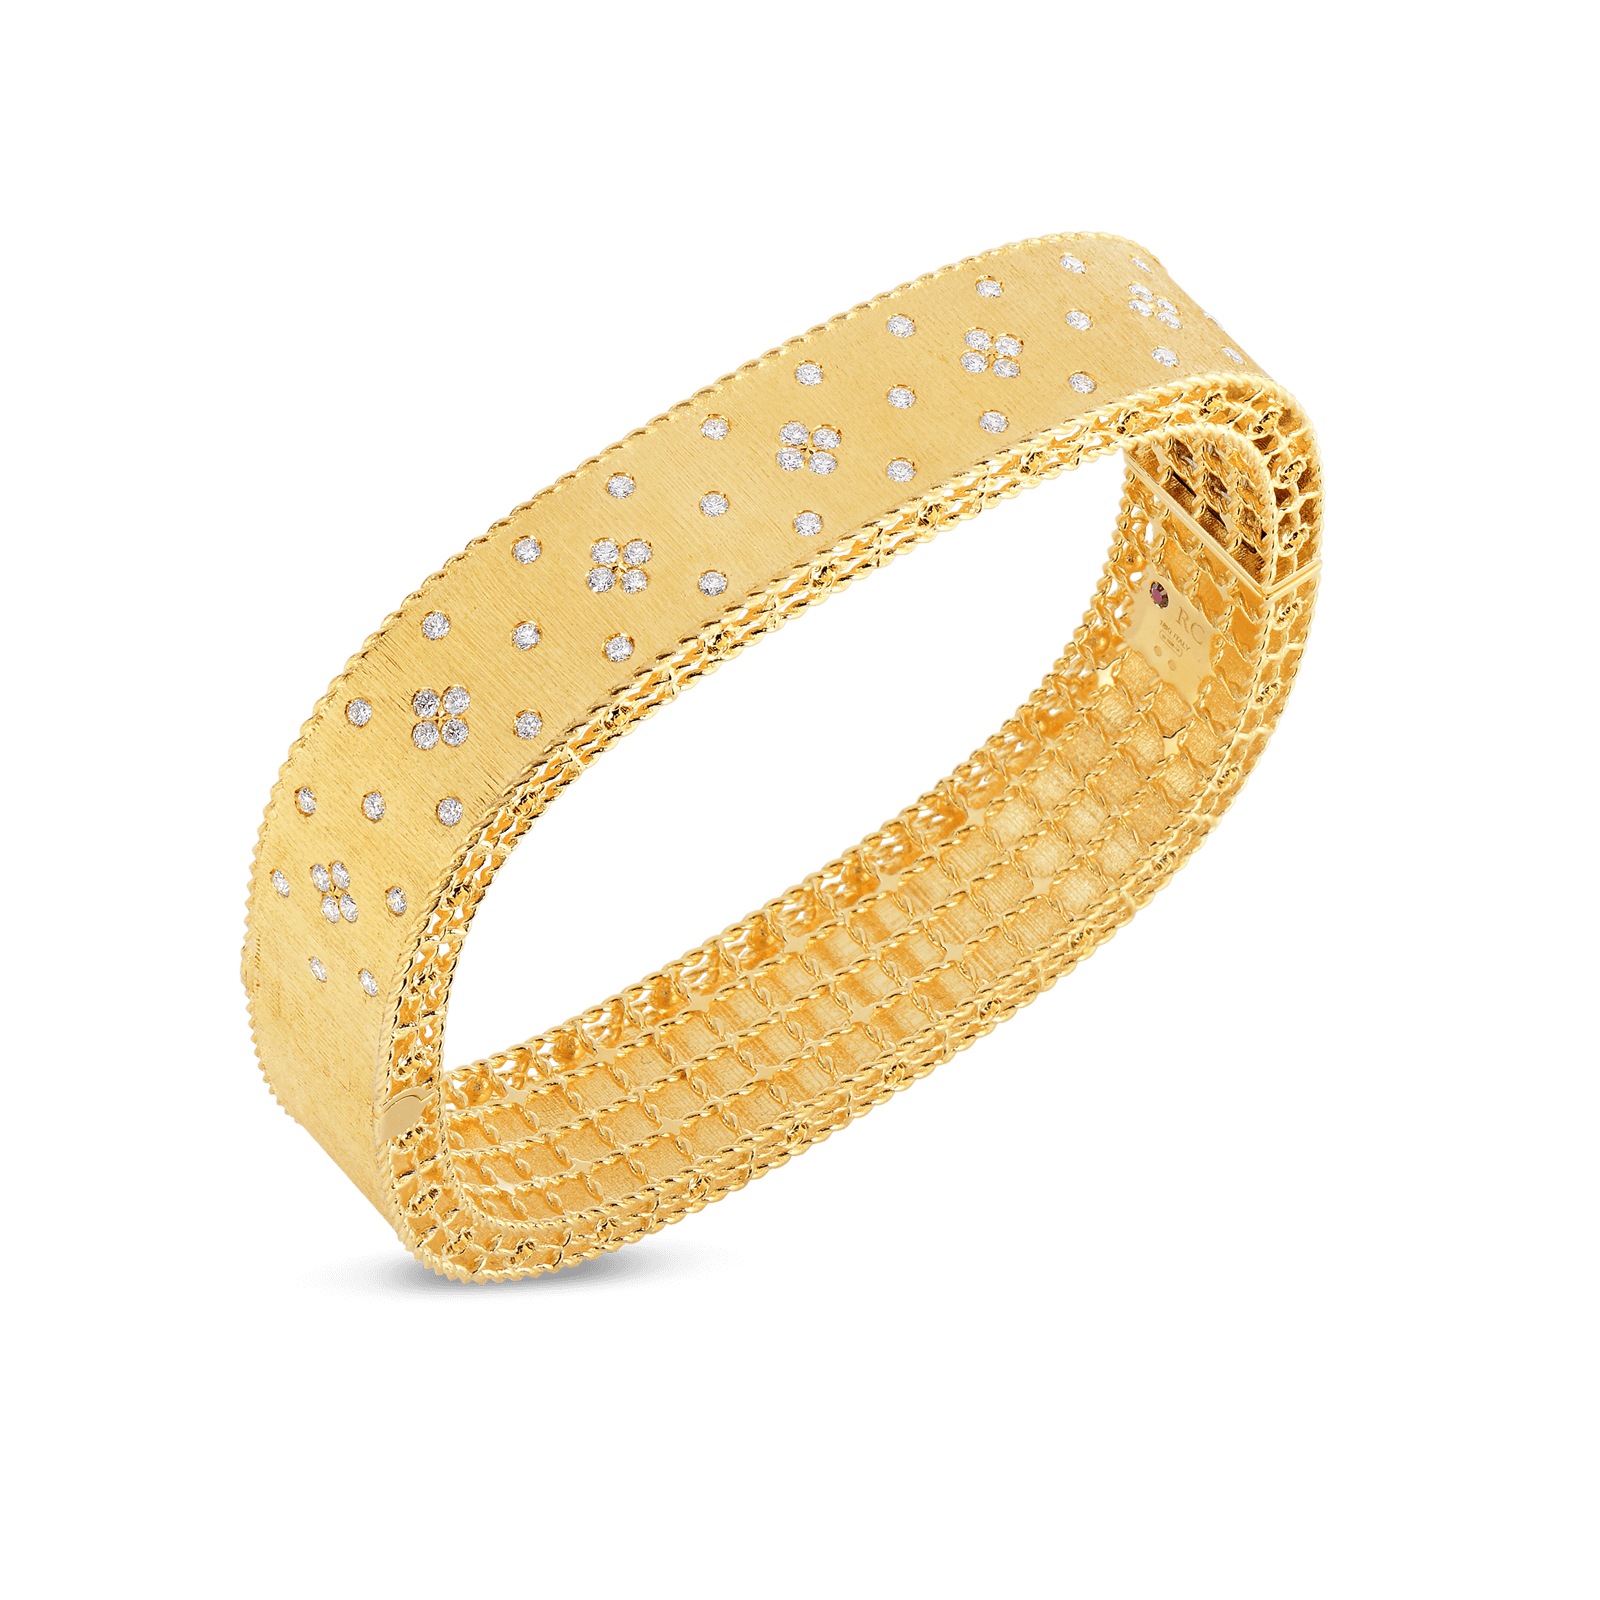 small sale bracelet wedding s women season online bangle buy store bangles bridal type india and kundan gold bracelets original